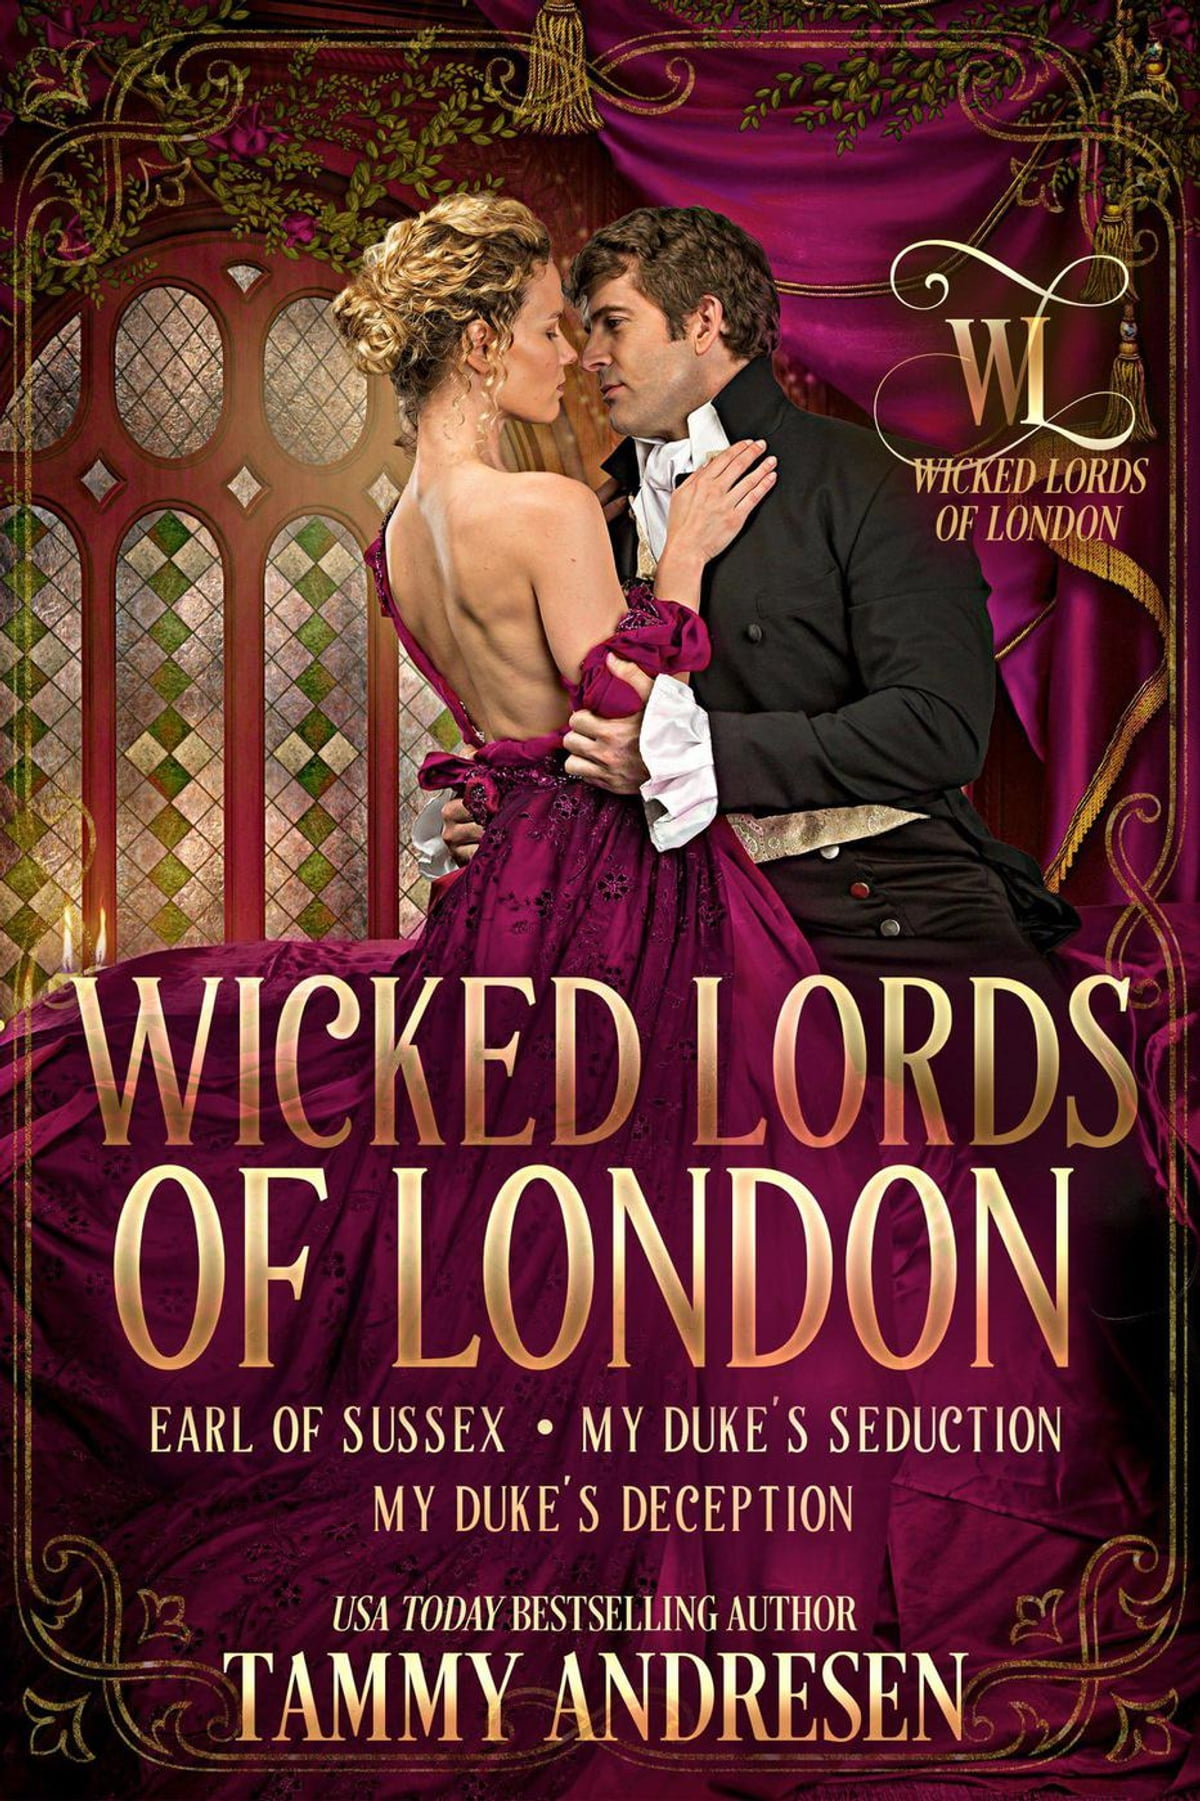 Wicked Libro Wicked Lords Of London Ebooks By Tammy Andresen Rakuten Kobo